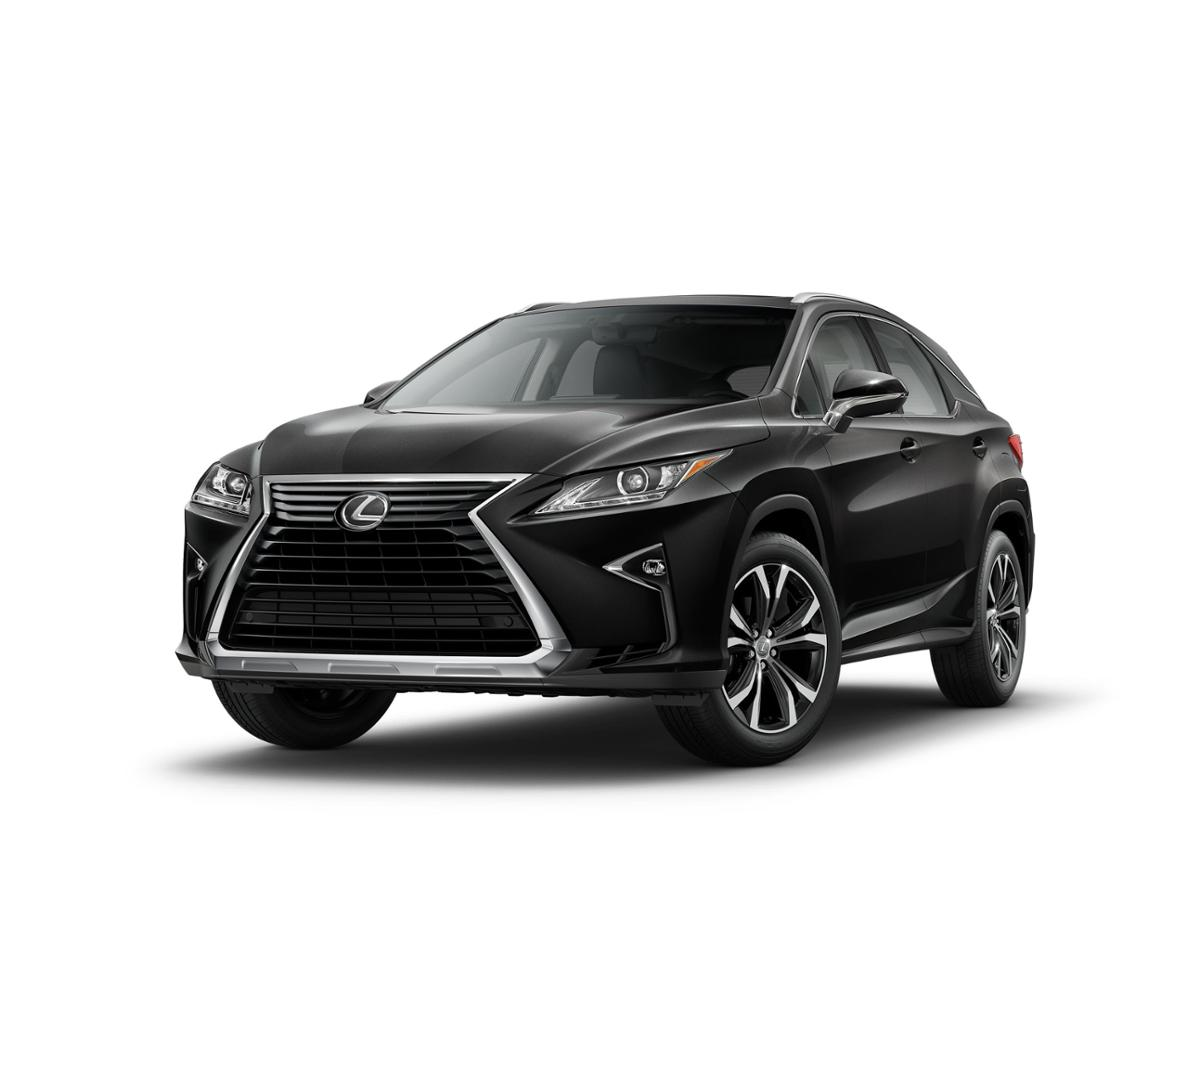 2017 Lexus RX 350 Vehicle Photo in Charlotte, NC 28212